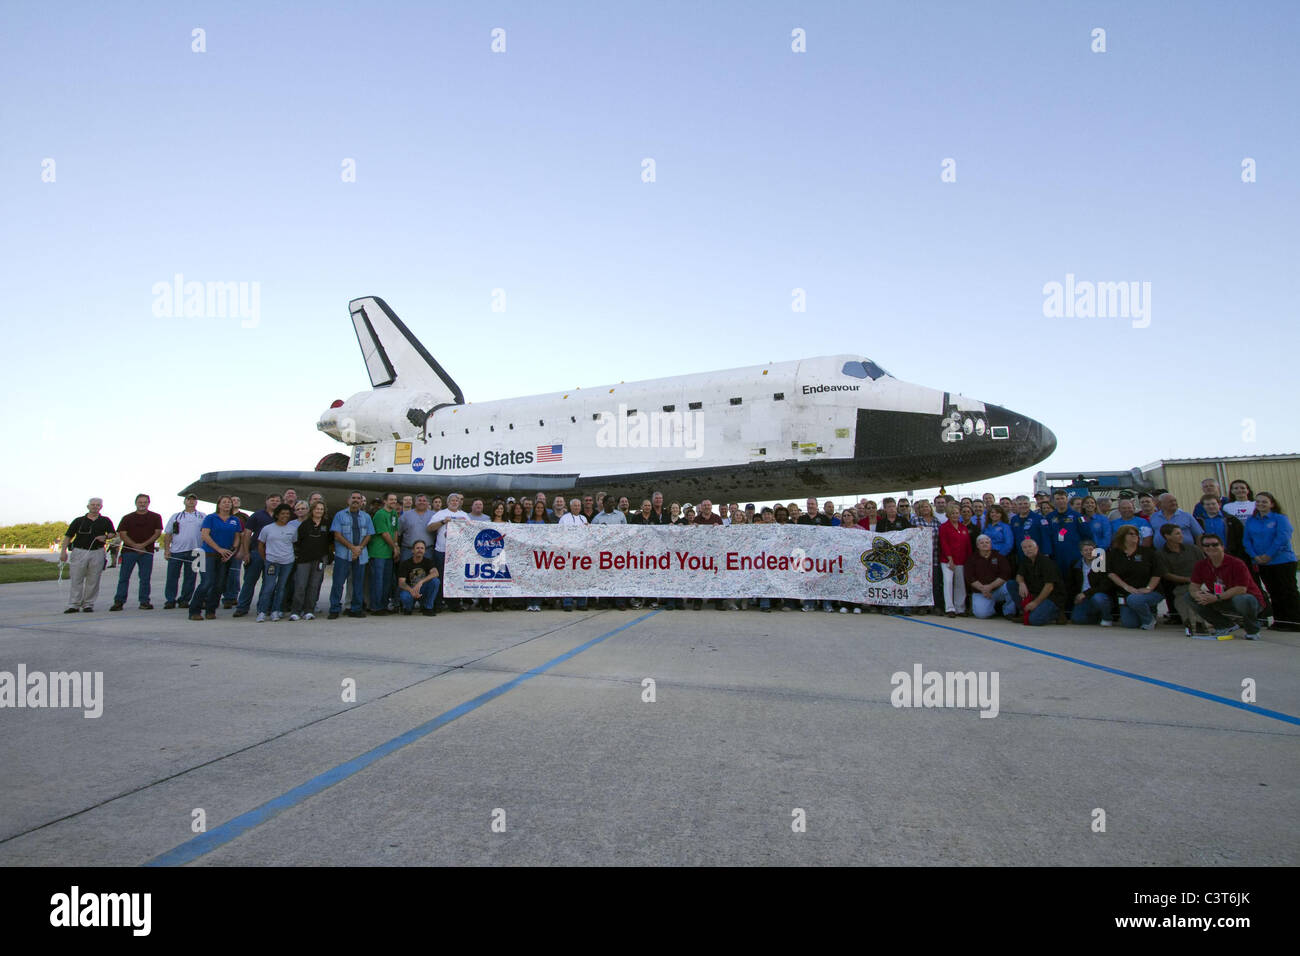 We're Behind You, Endeavour Employees gather to hold up a banner to commemorate space shuttle Endeavour's - Stock Image